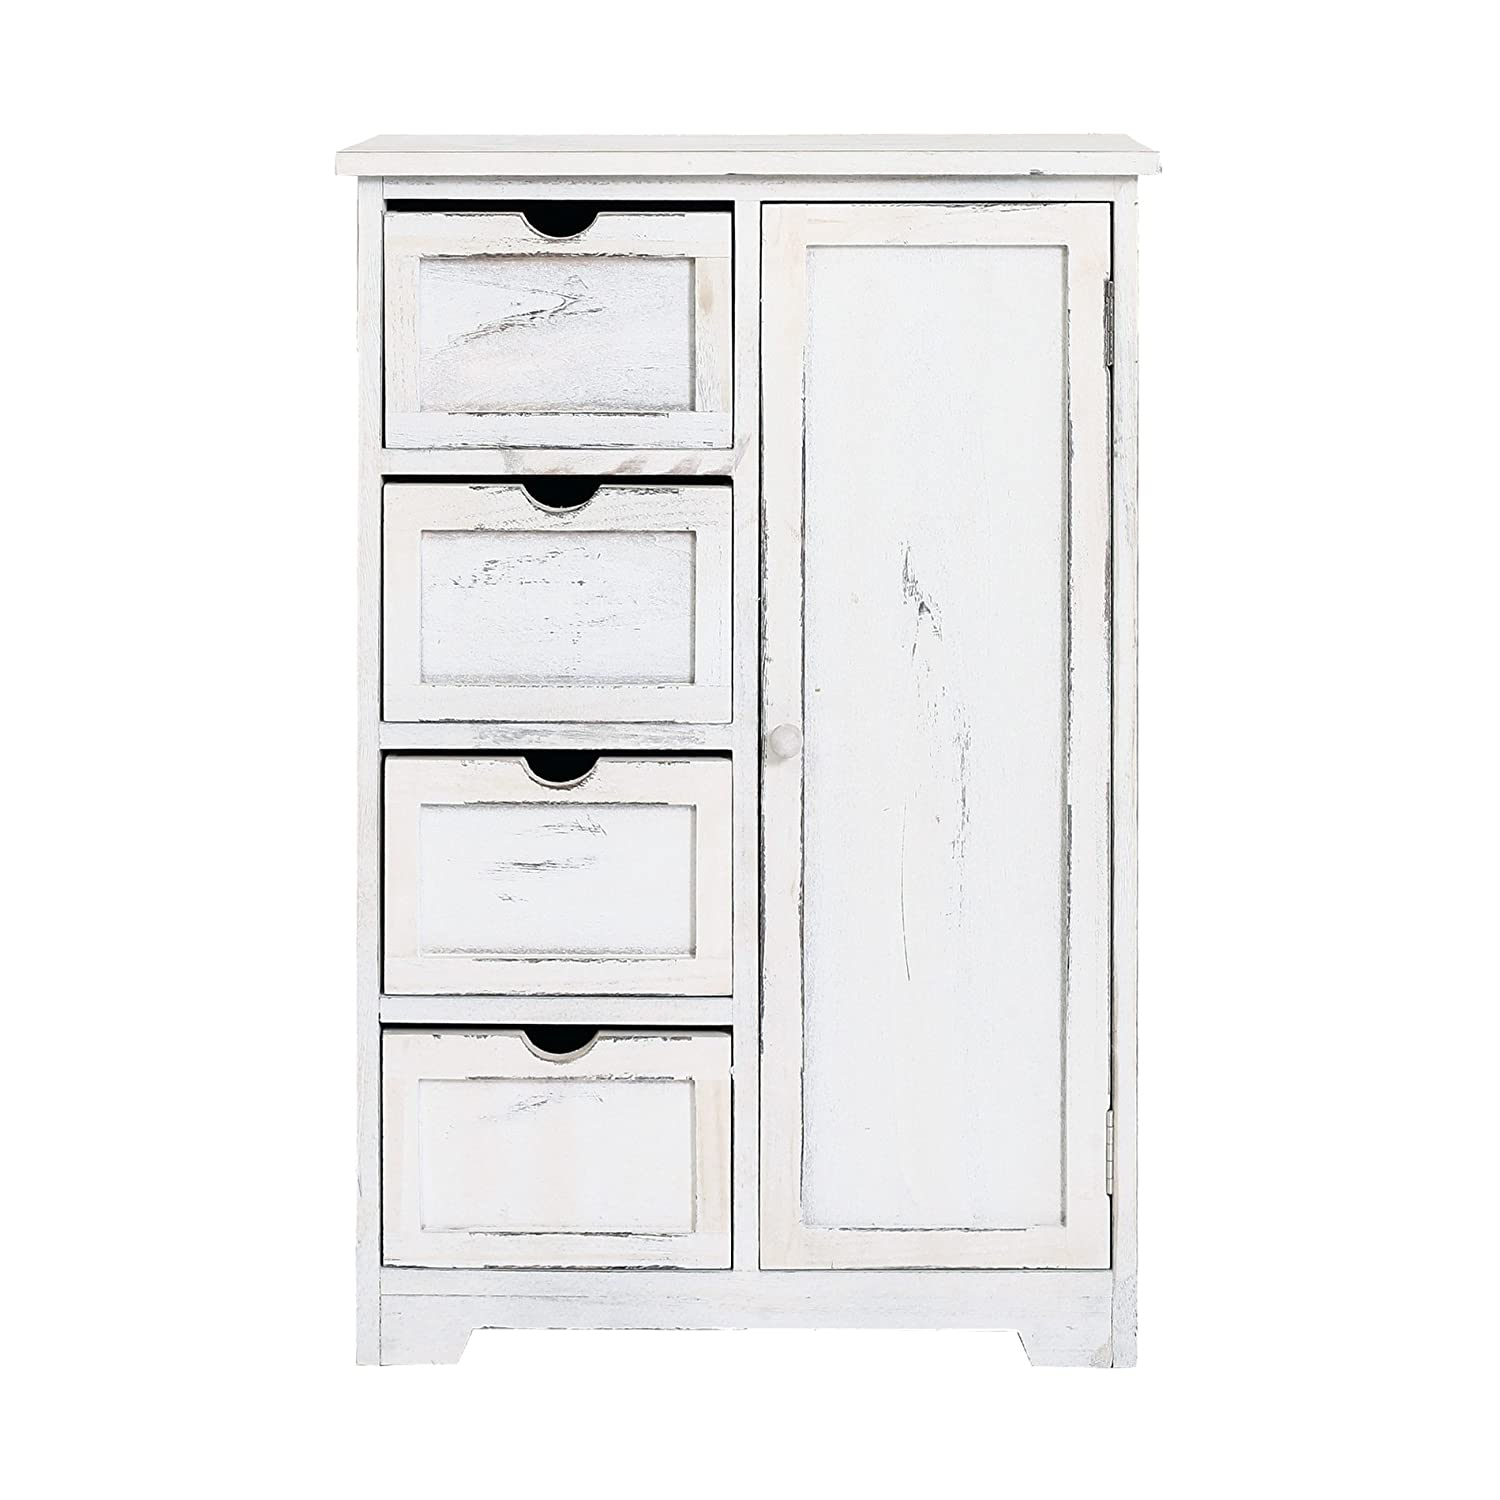 Rebecca srl Chest of Drawers Cupboard 4 Drawers 1 Door Wood White Retrò Barthroom Kitchen (Cod. RE4490)